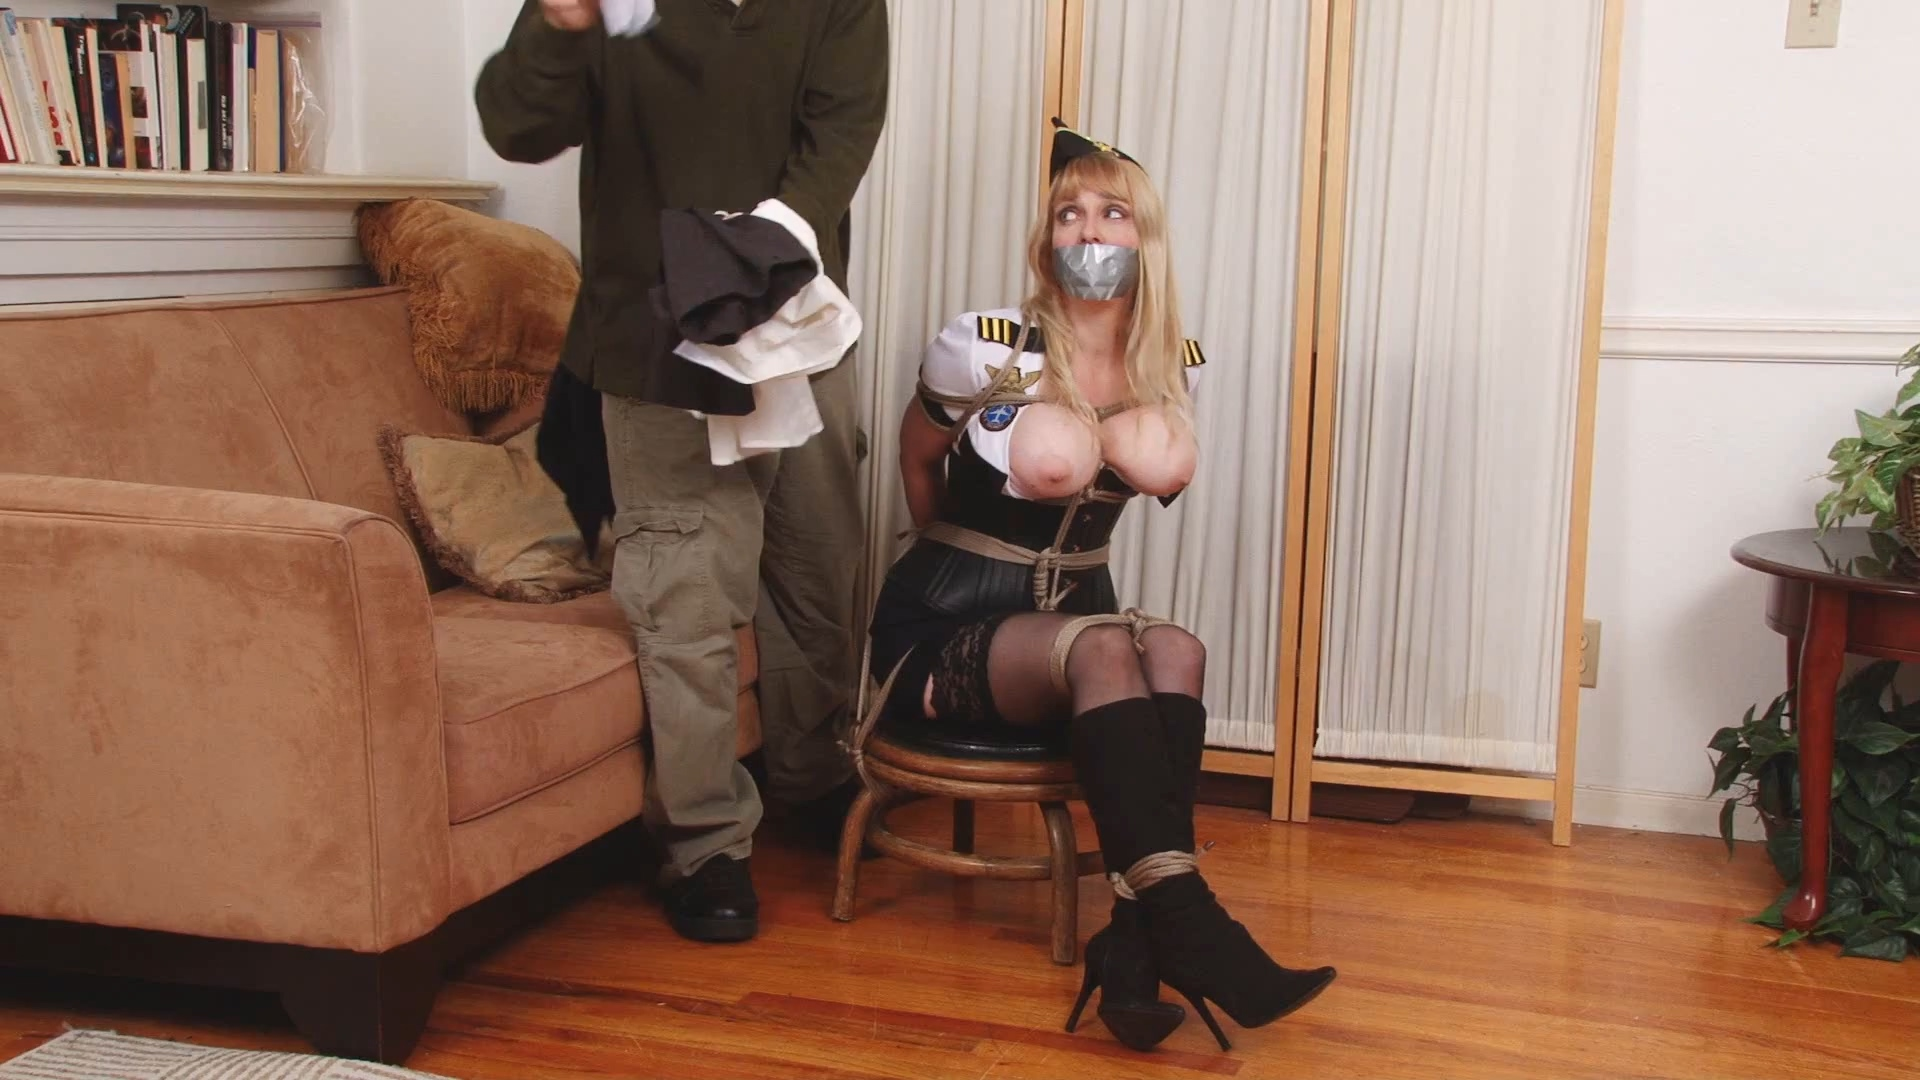 688078298_6_Lorelei_is_Bound_Gagged_and_Groped.mp4_20181213_095946.583_123_381lo.jpg